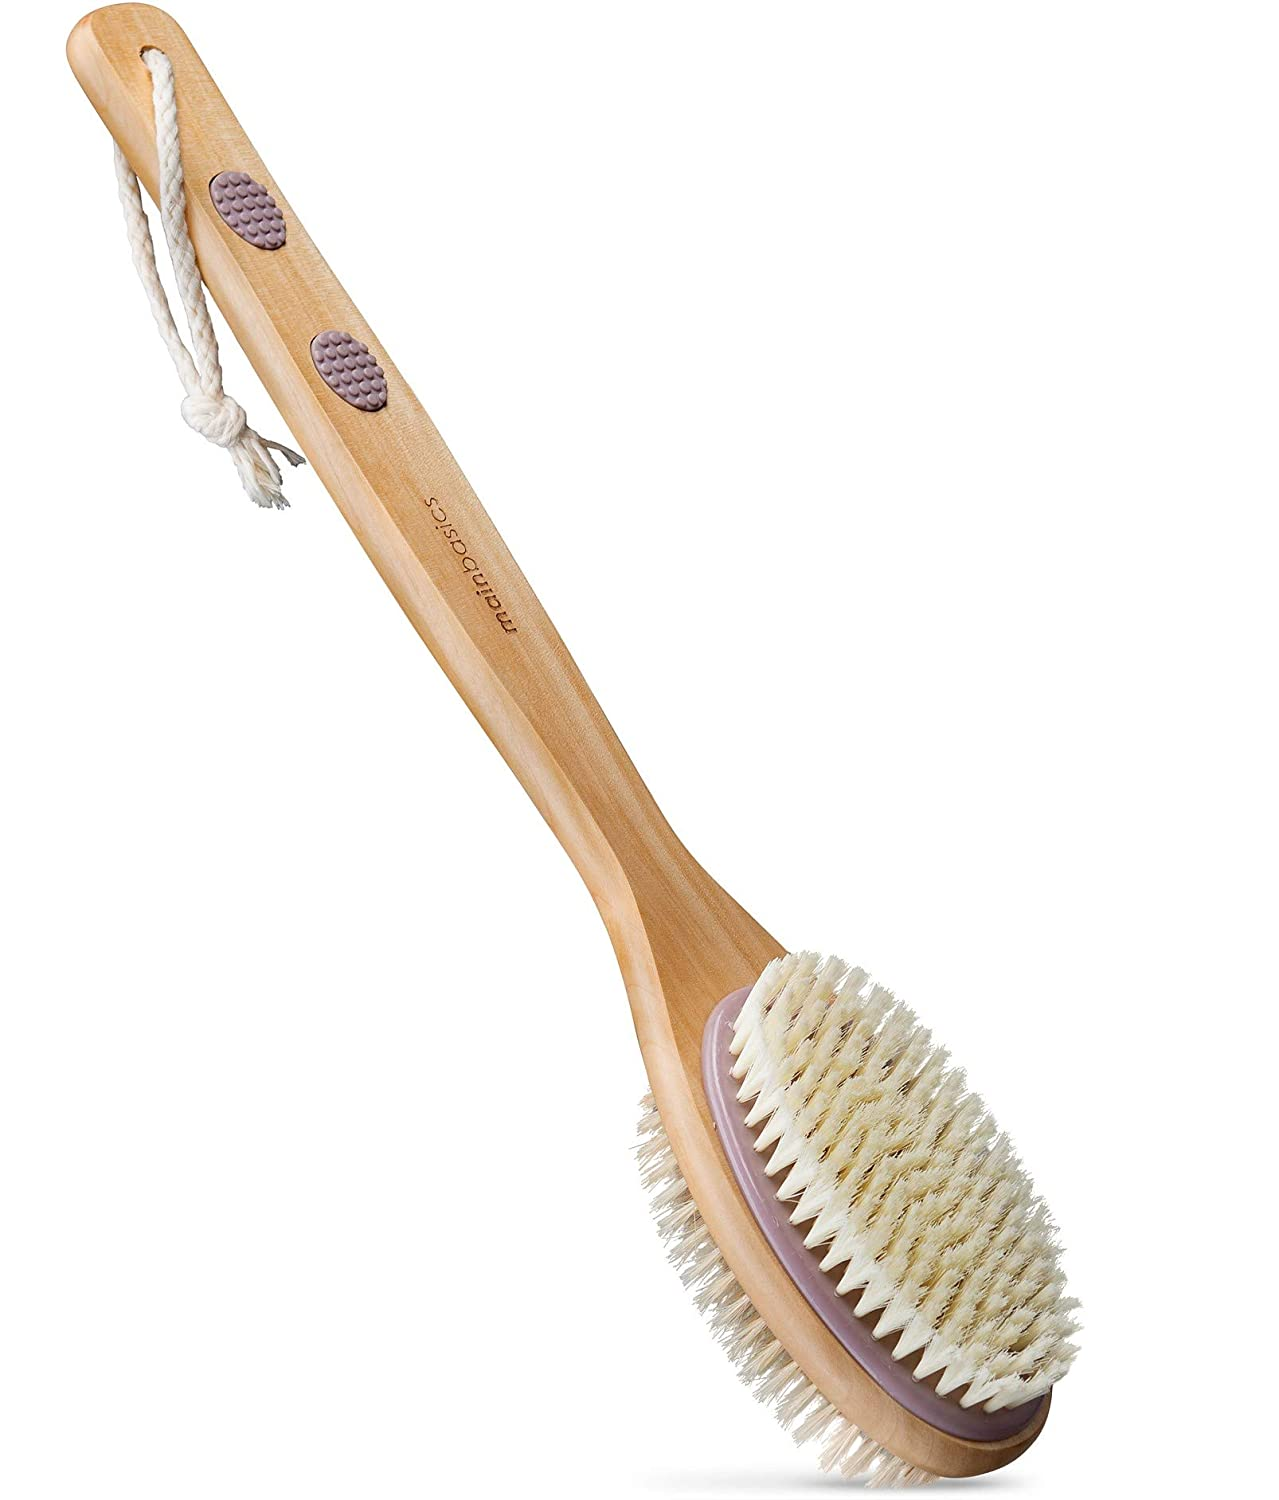 MainBasics Dual-Sided Long Handle 2021 Bath Brush Scrubbe Back Super special price Shower